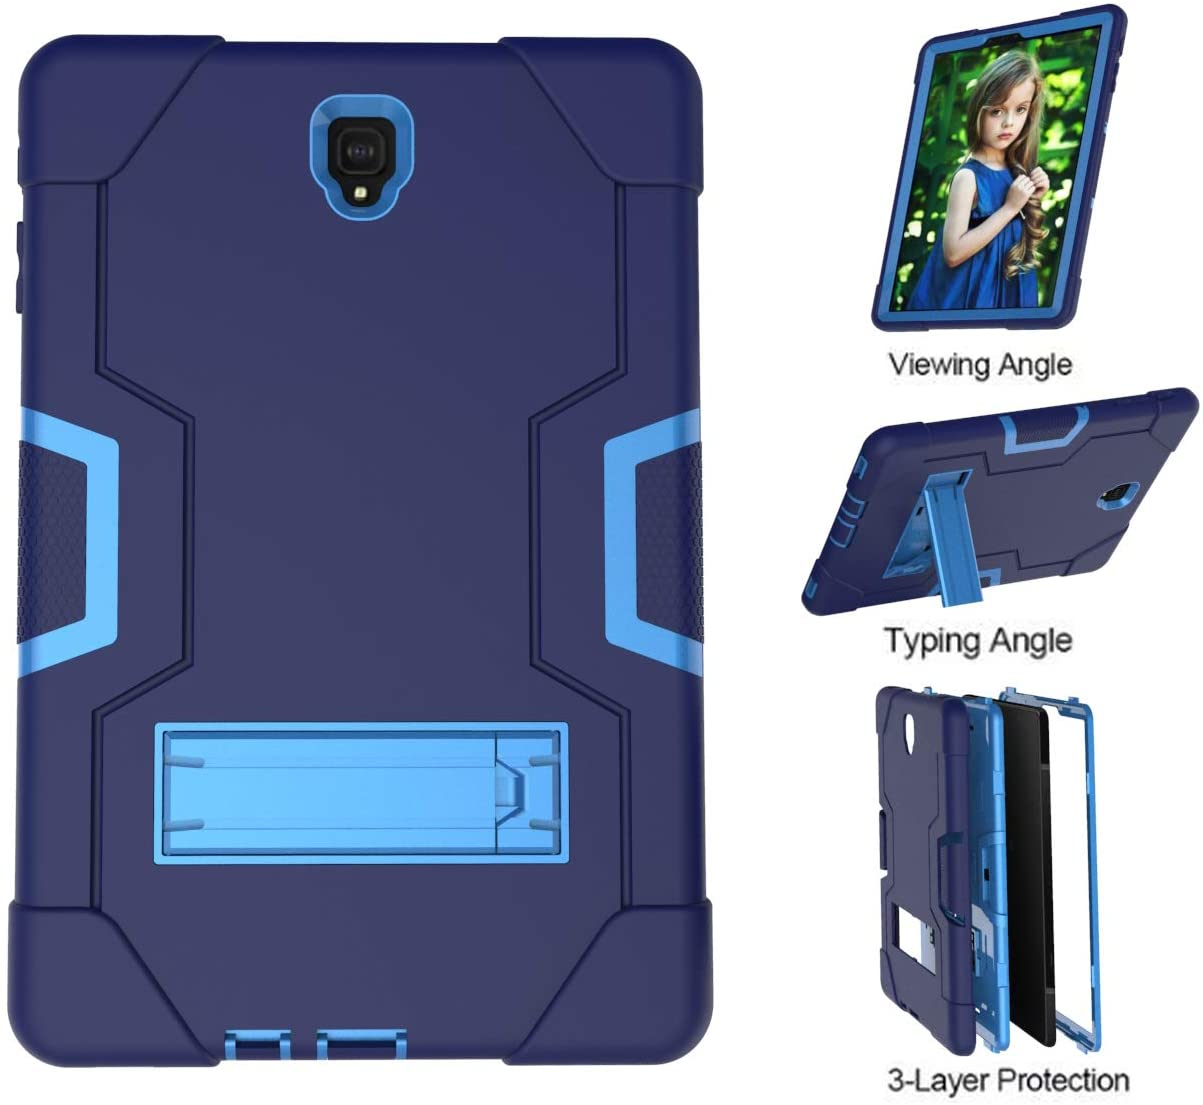 TianTa Galaxy Tab A 8.0 2019 (SM-P200/P205) Case, Hybrid Heavy Duty Defender Shockproof Protective with Built-in Kickstand for Galaxy Tab A 8.0 Inch with S Pen 2019 SM-P200/P205 - NavyBlue/Blue